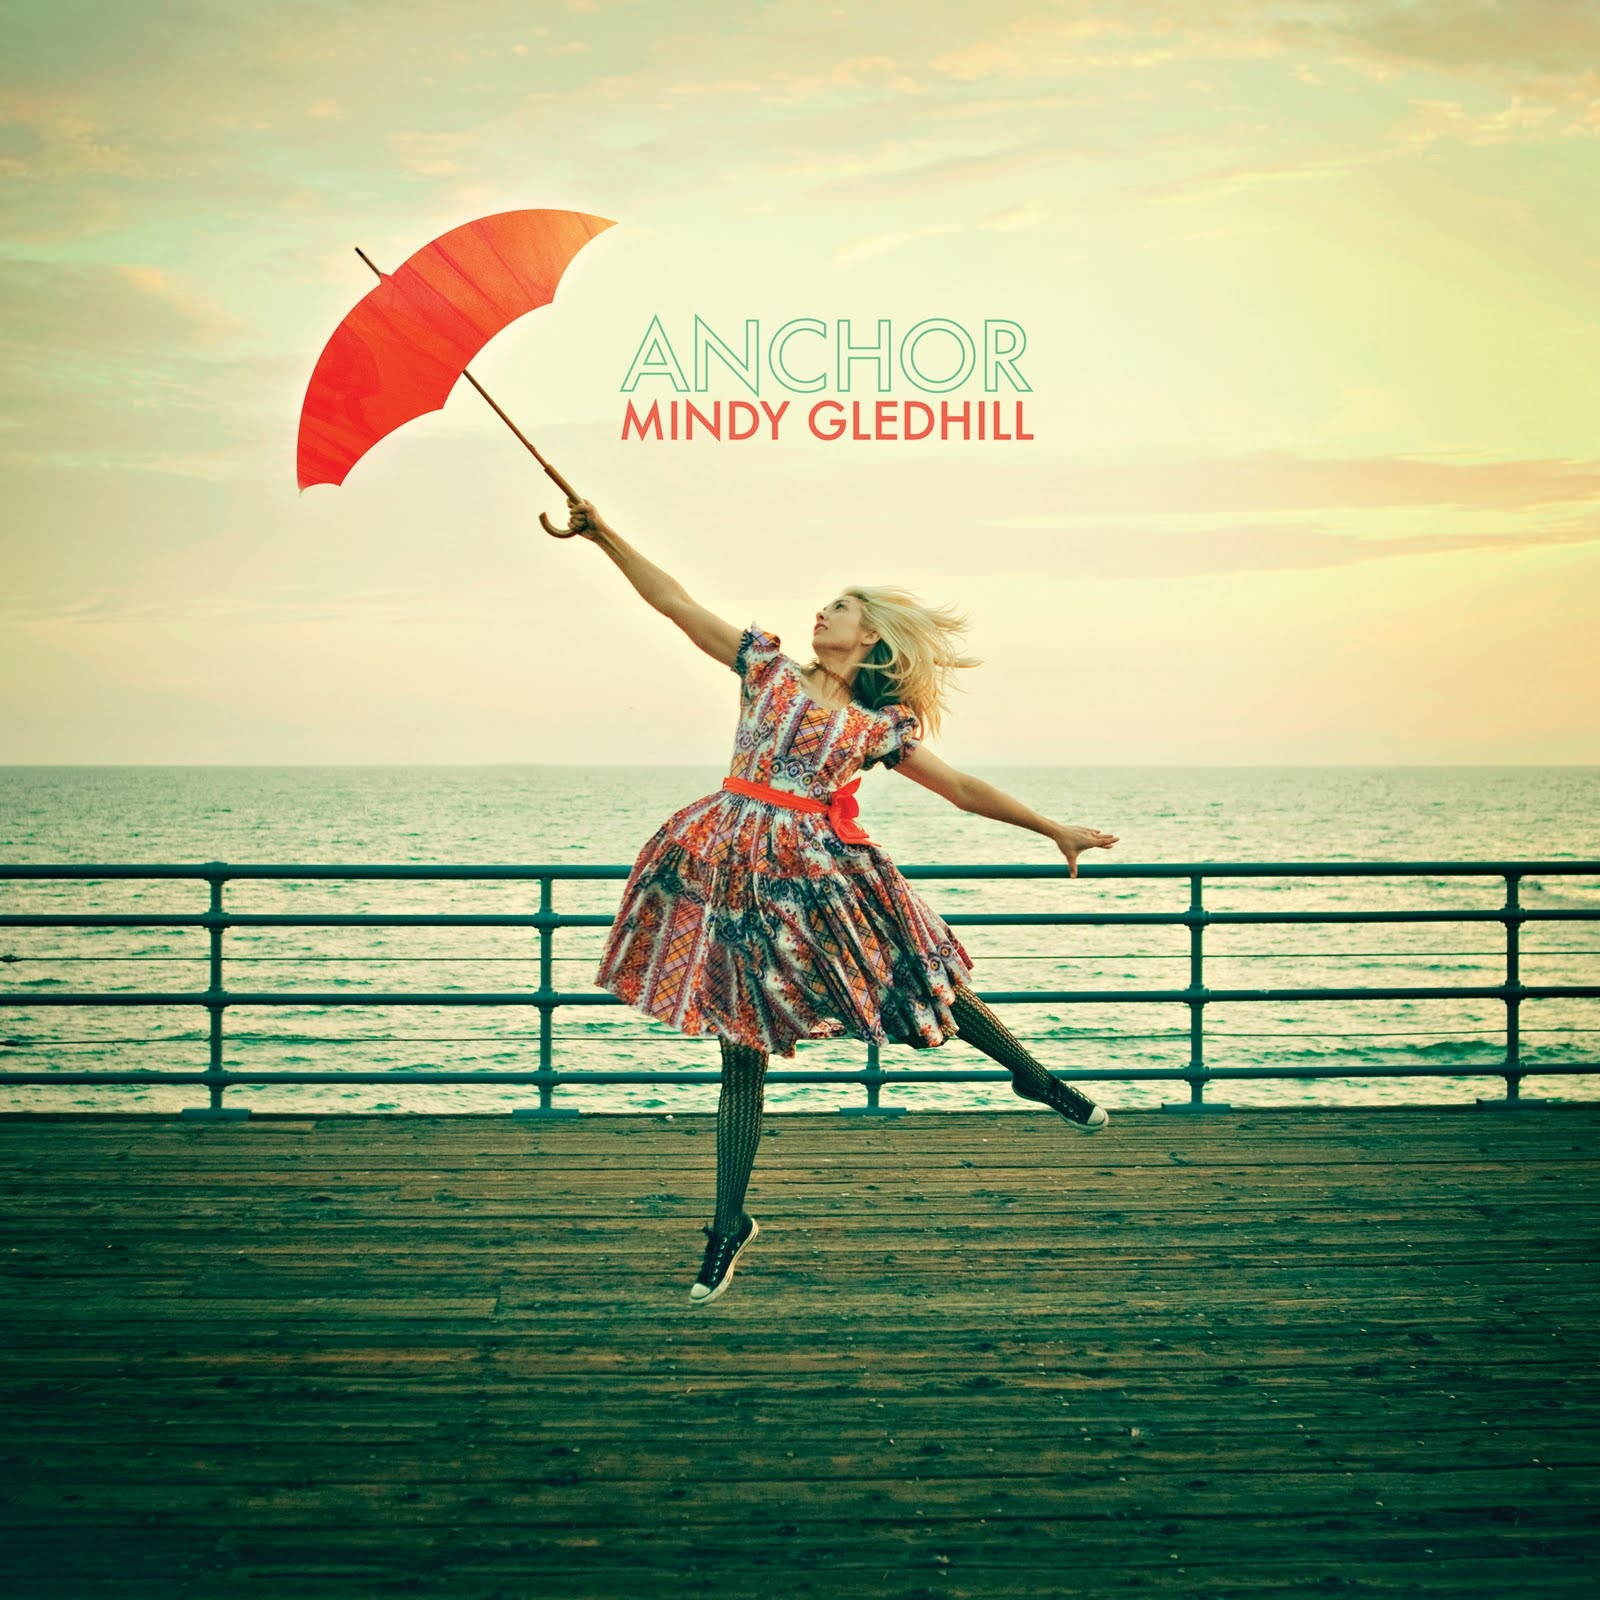 Gledhill - [10's] Mindy Gledhill - All About Your Heart (2010) Mindy%20Gledhill%20-%20Anchor